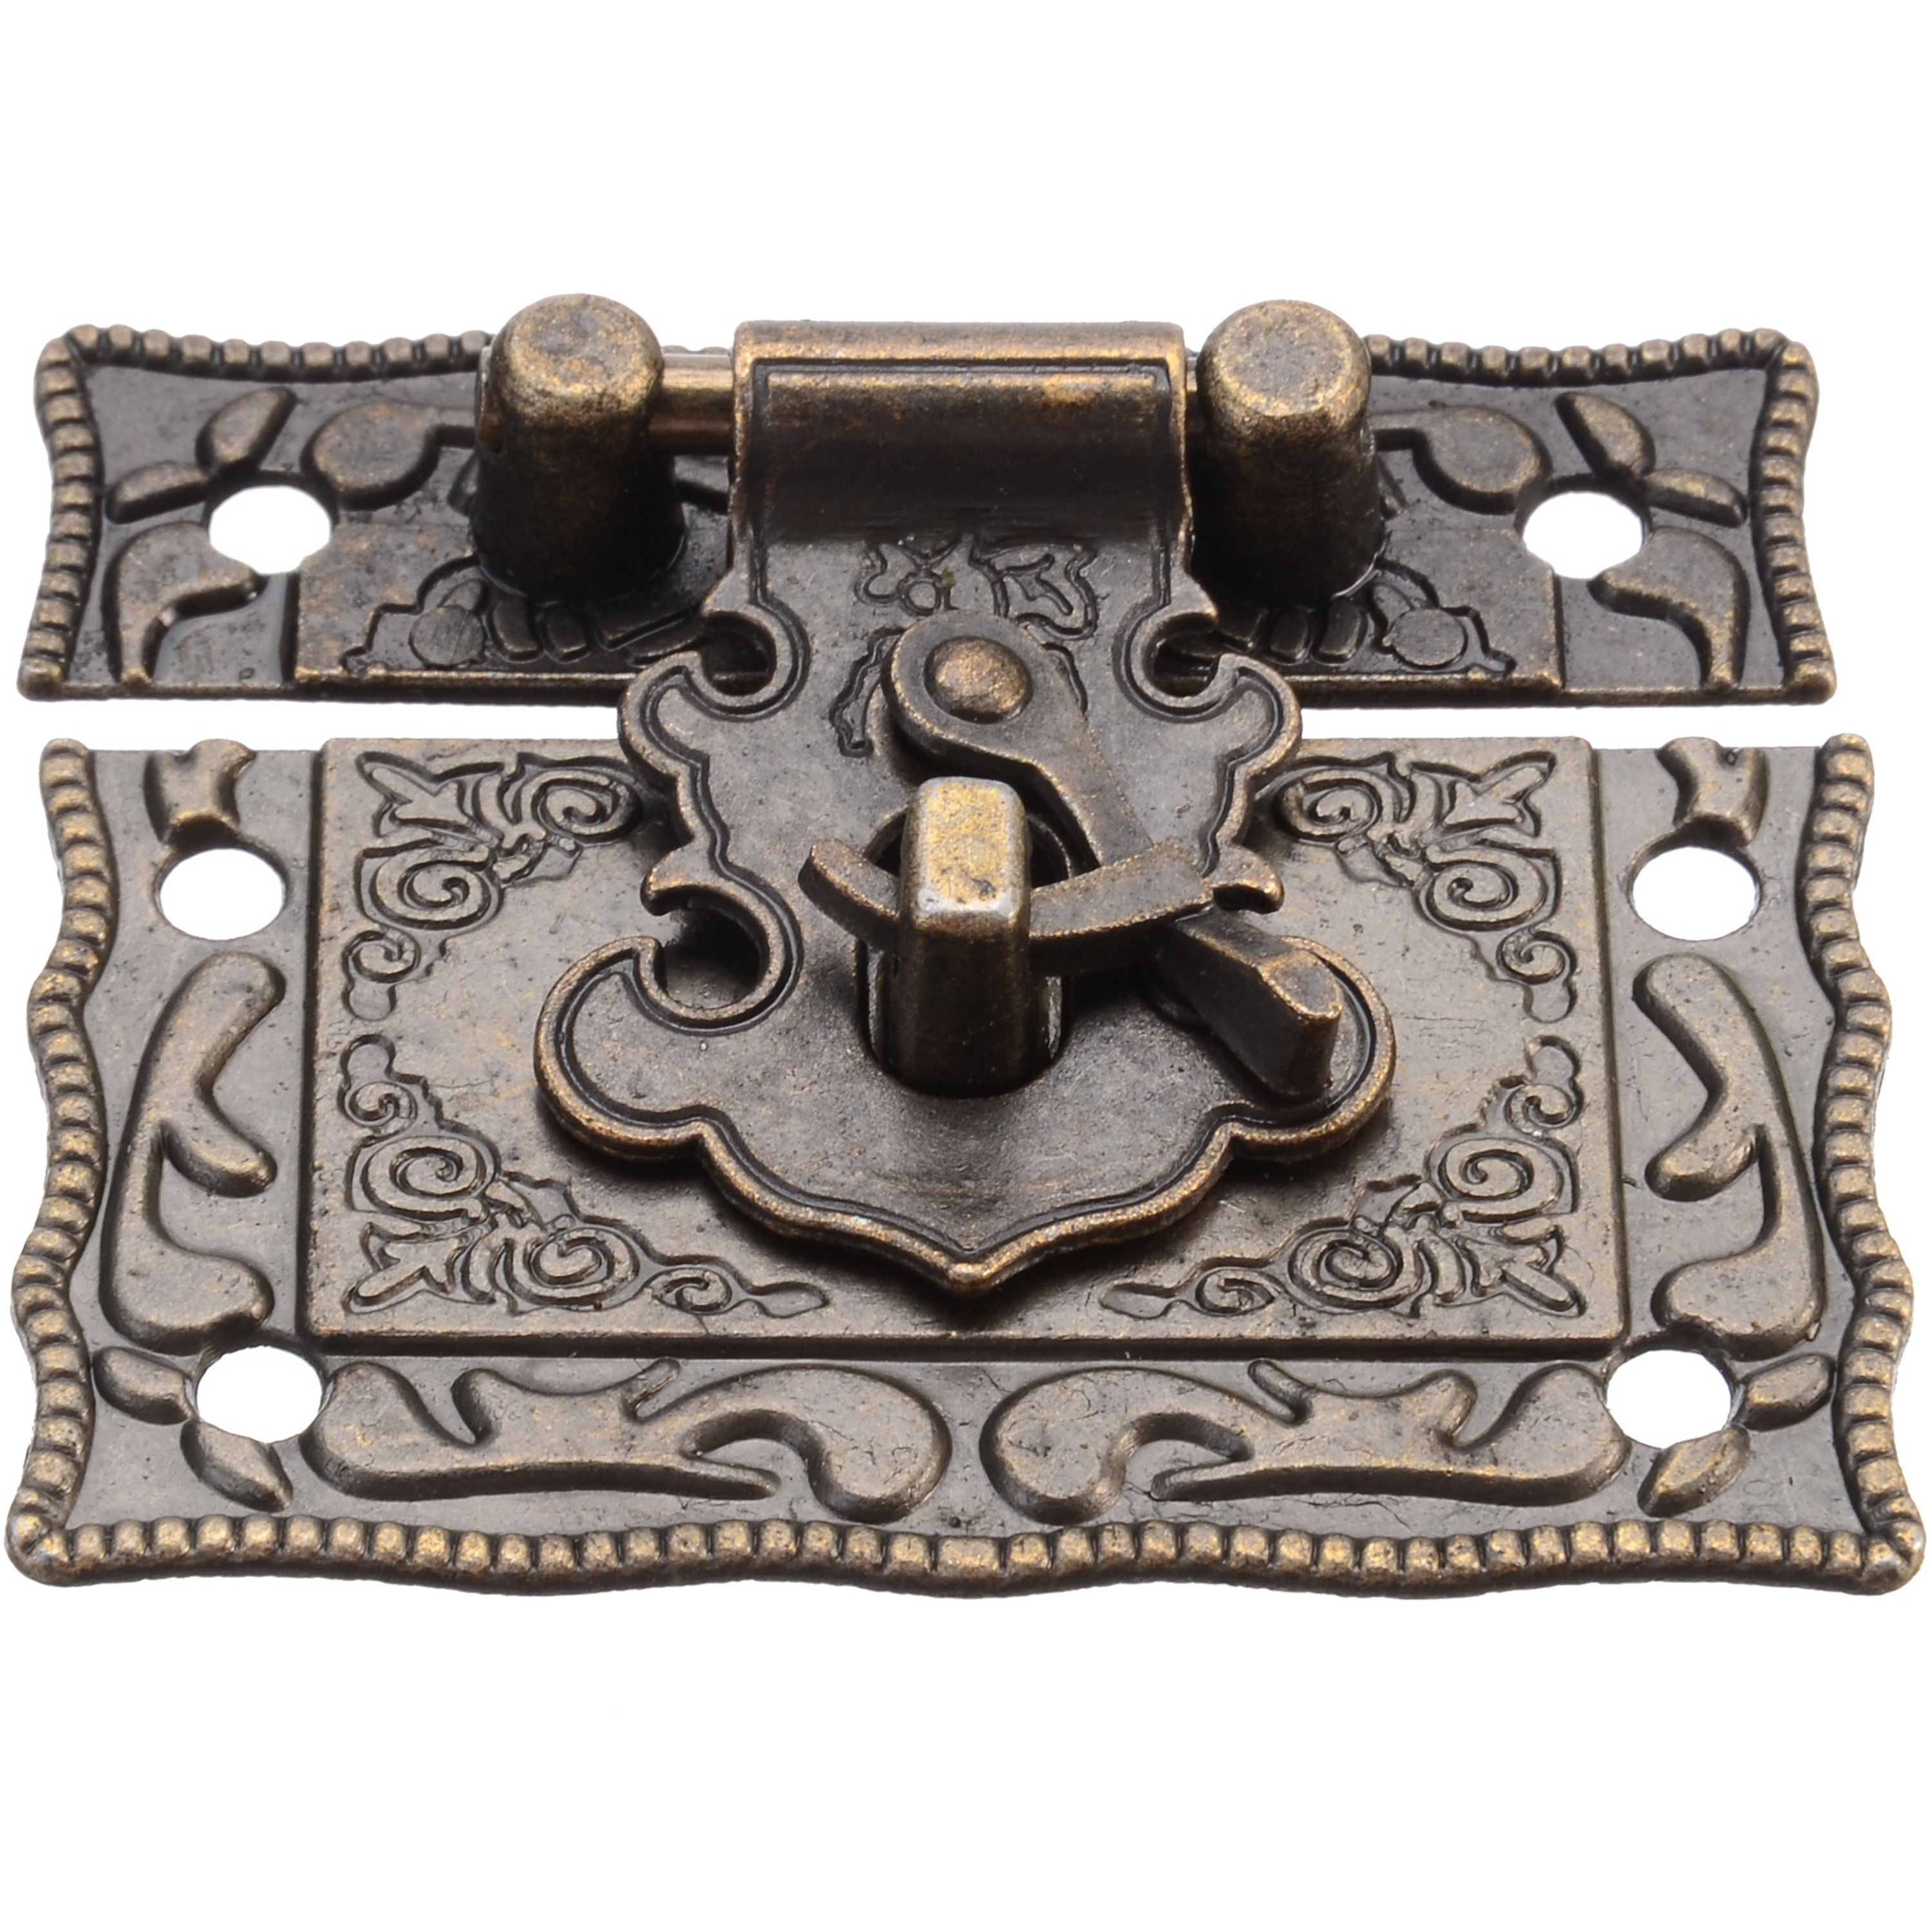 1PC 51*42mm Antique Jewelry Wooden Box Decorative Latch Toggle Lock For Cabinet Drawer Cupboard Hardware Hasps